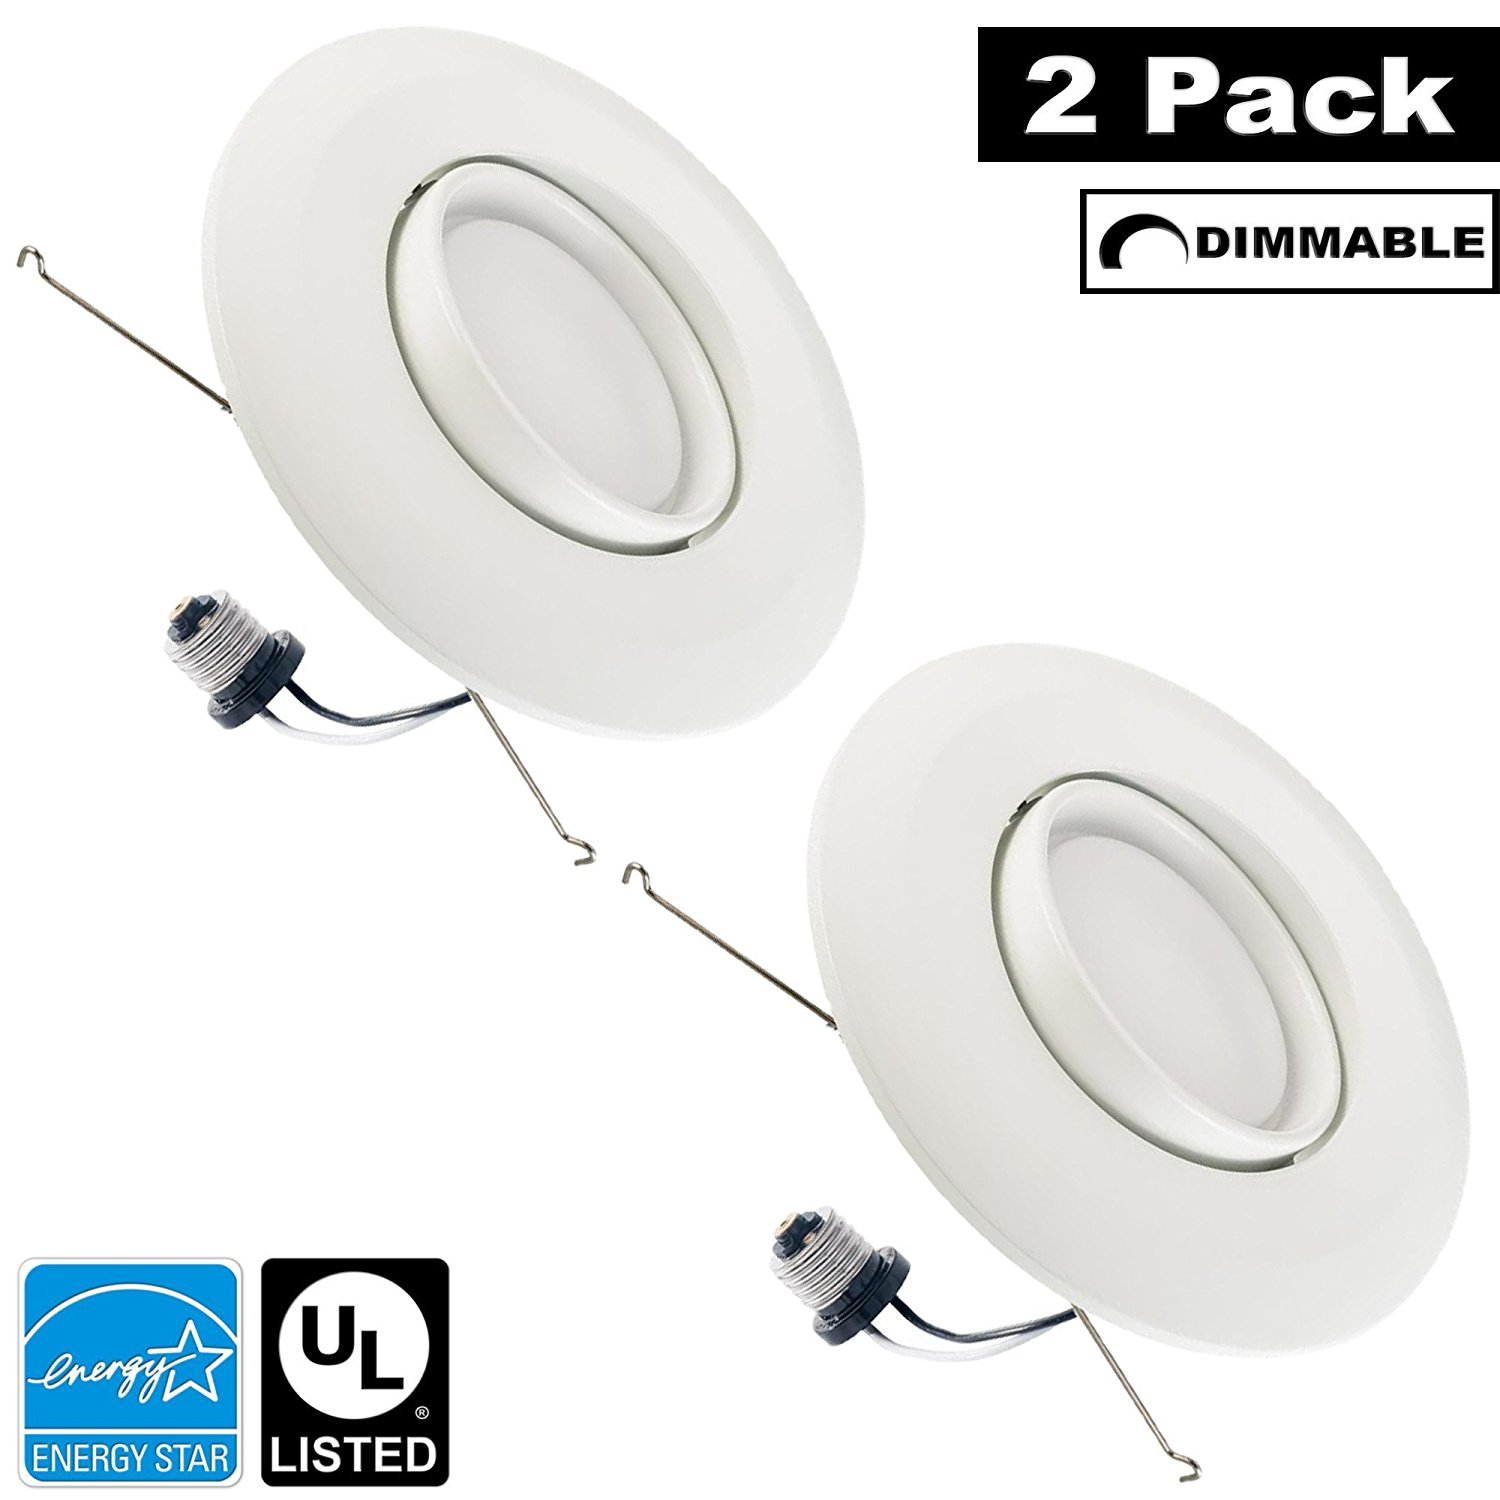 Luxrite LR23040 (2-Pack) 15W 5/6 Inch LED Gimbal Retrofit Downlight, 120W Equivalent, ENERGY STAR, Dimmable, Soft White 3000K, Adjustable Recessed LED Ceiling Light, UL Listed